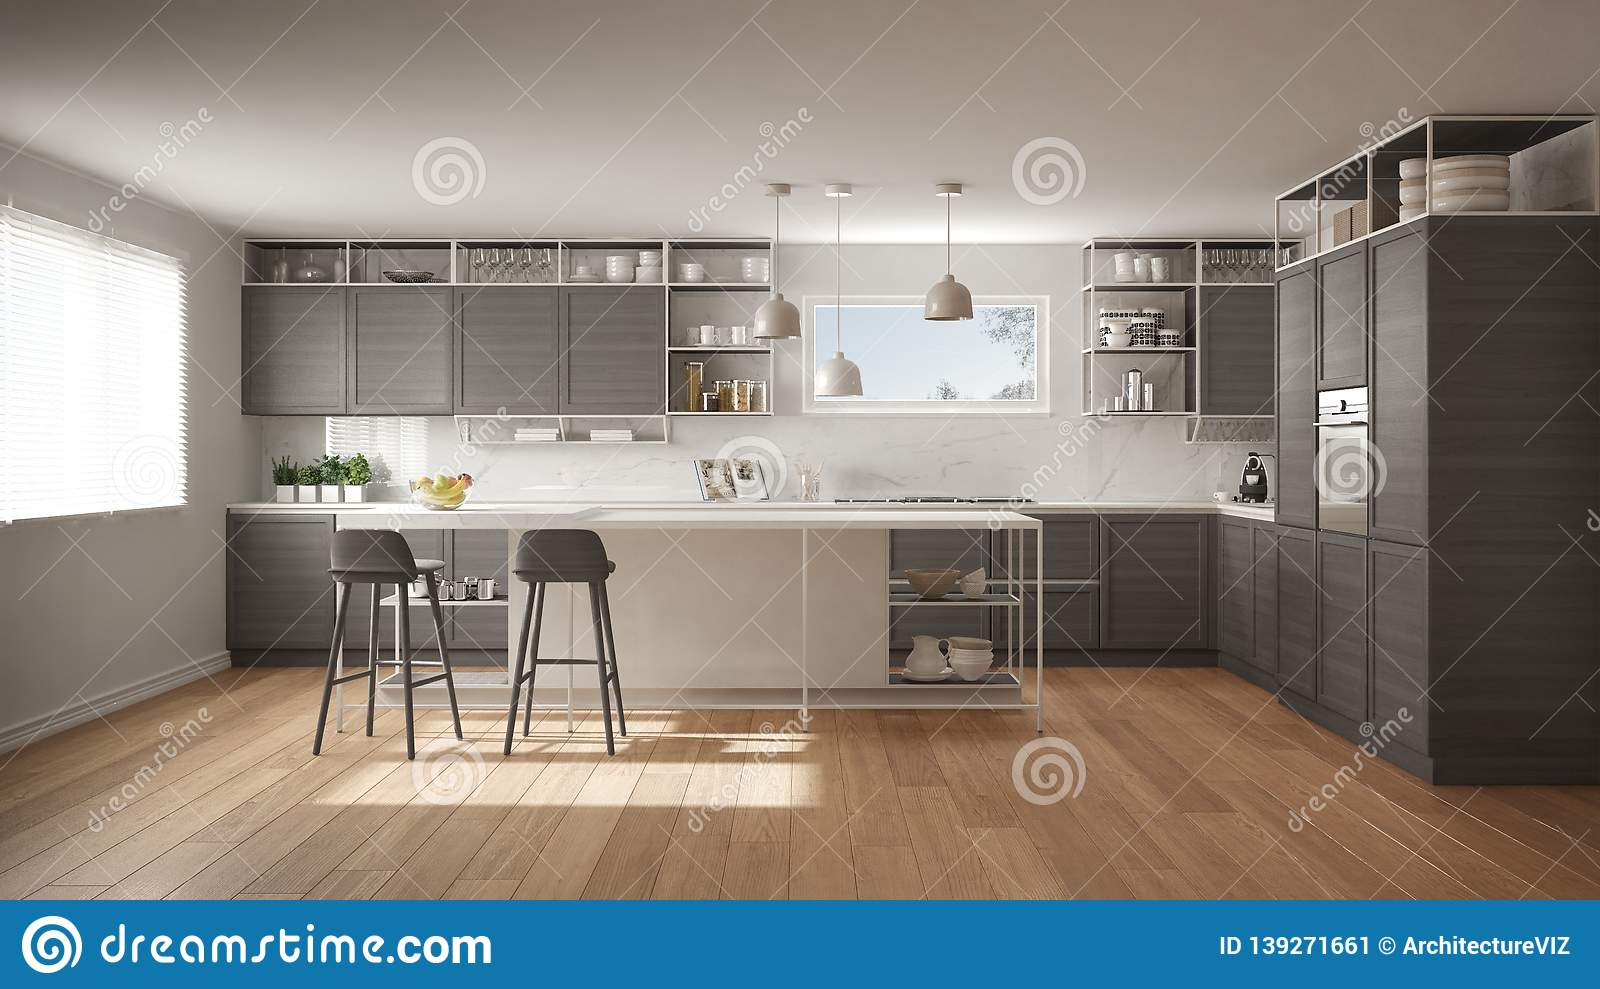 Modern White And Gray Kitchen With Wooden Details And Parquet Floor Modern Pendant Lamps Minimalistic Interior Design Concept Stock Illustration Illustration Of Living Villa 139271661